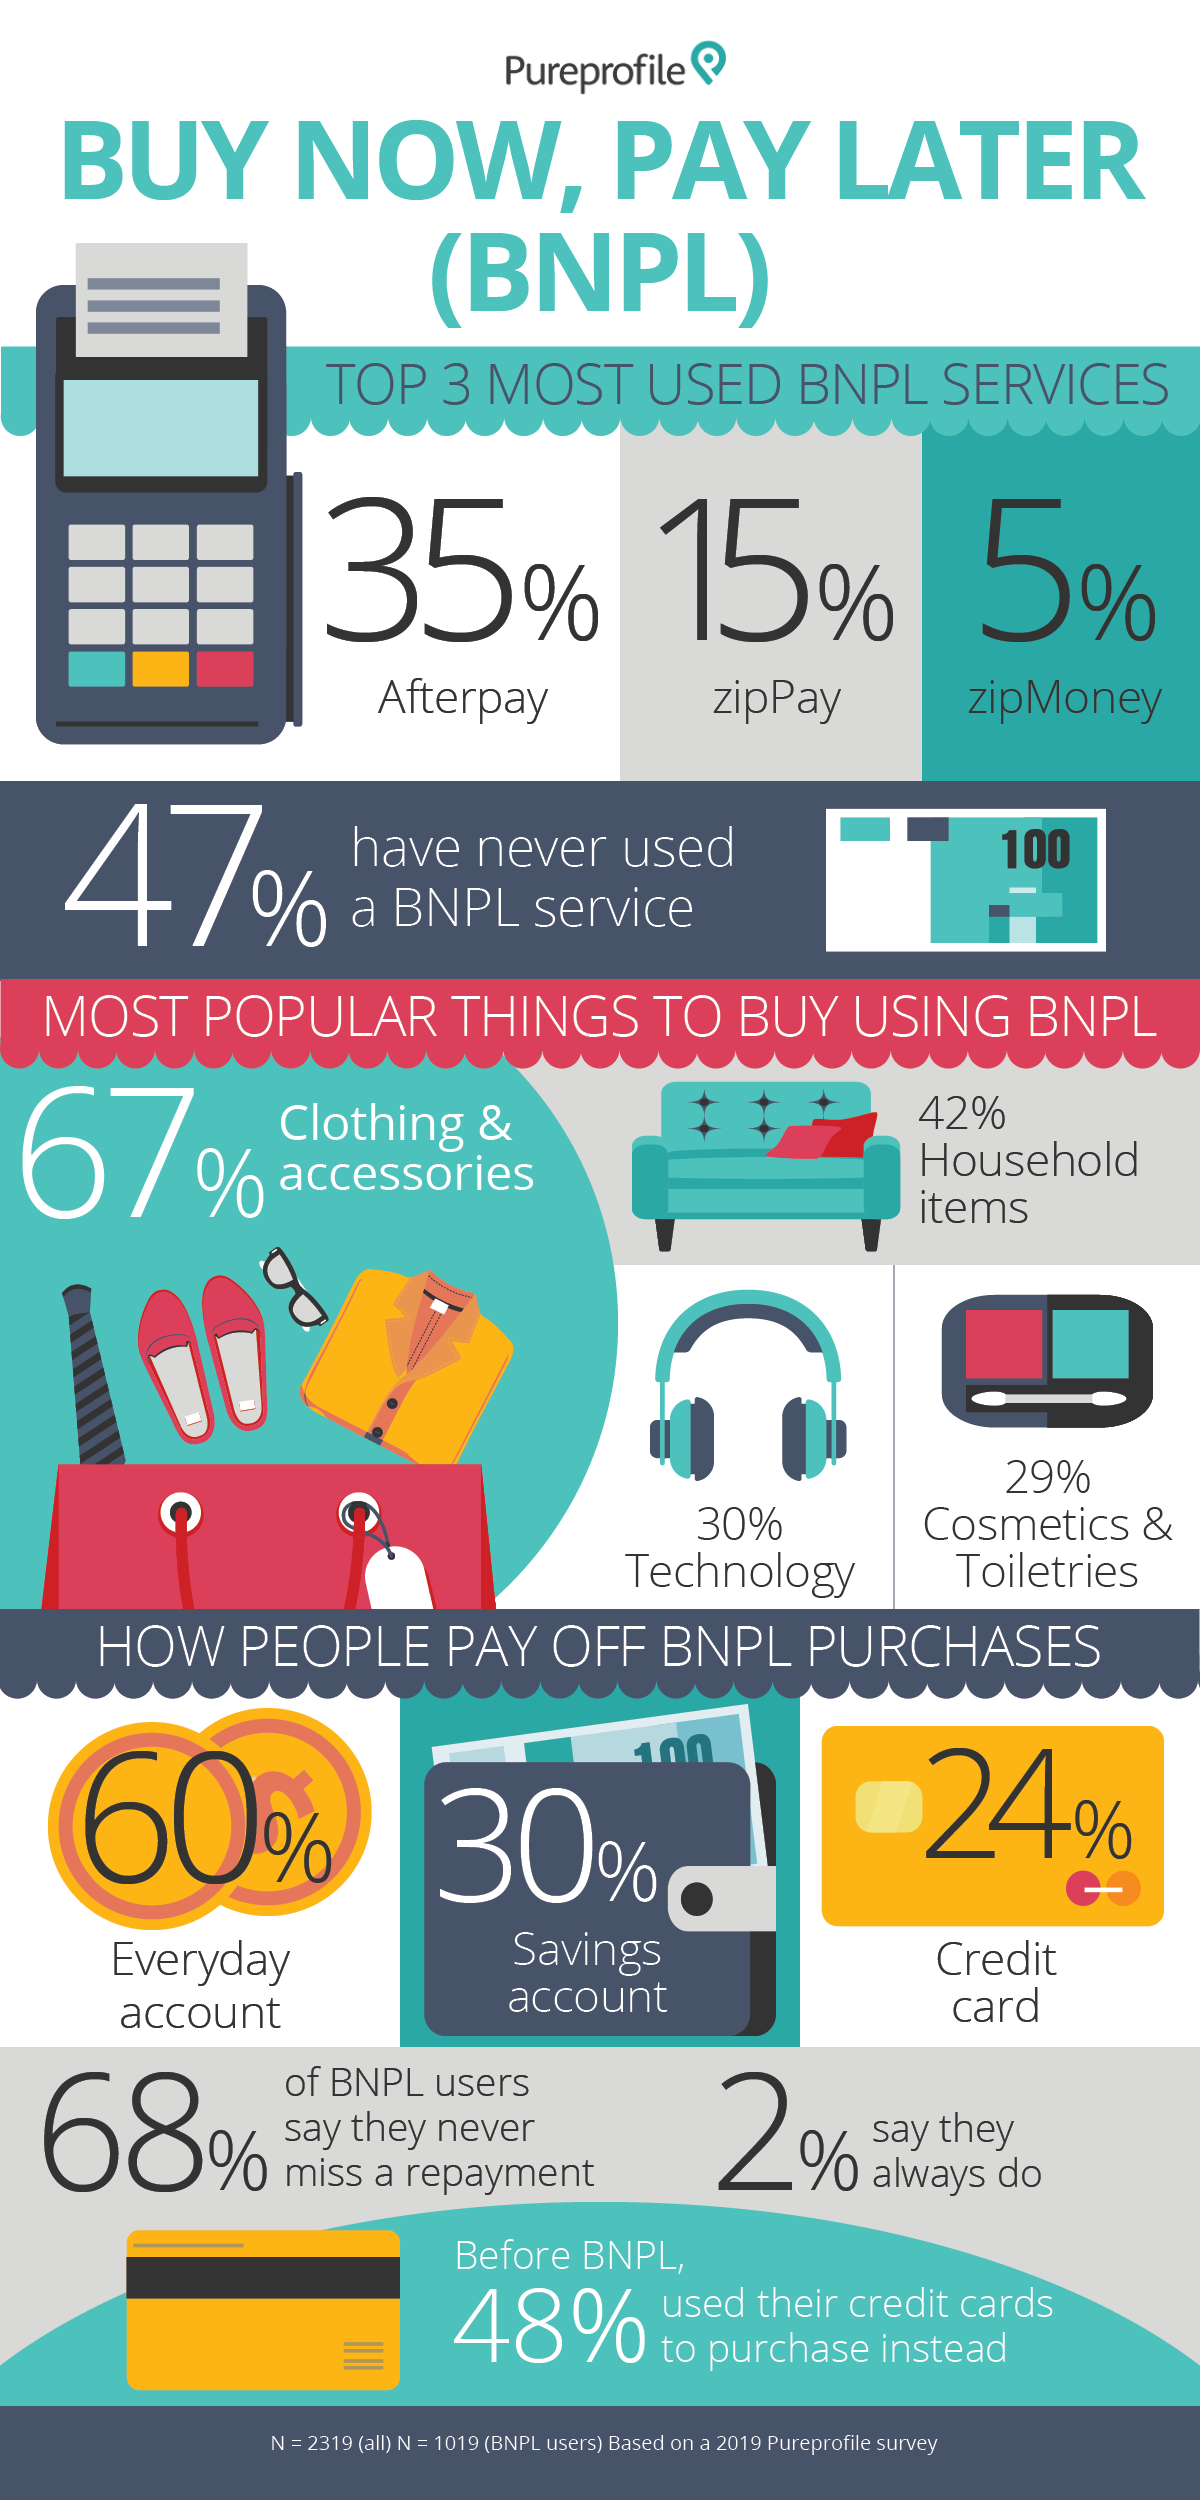 Infographic: Buy now, pay later services